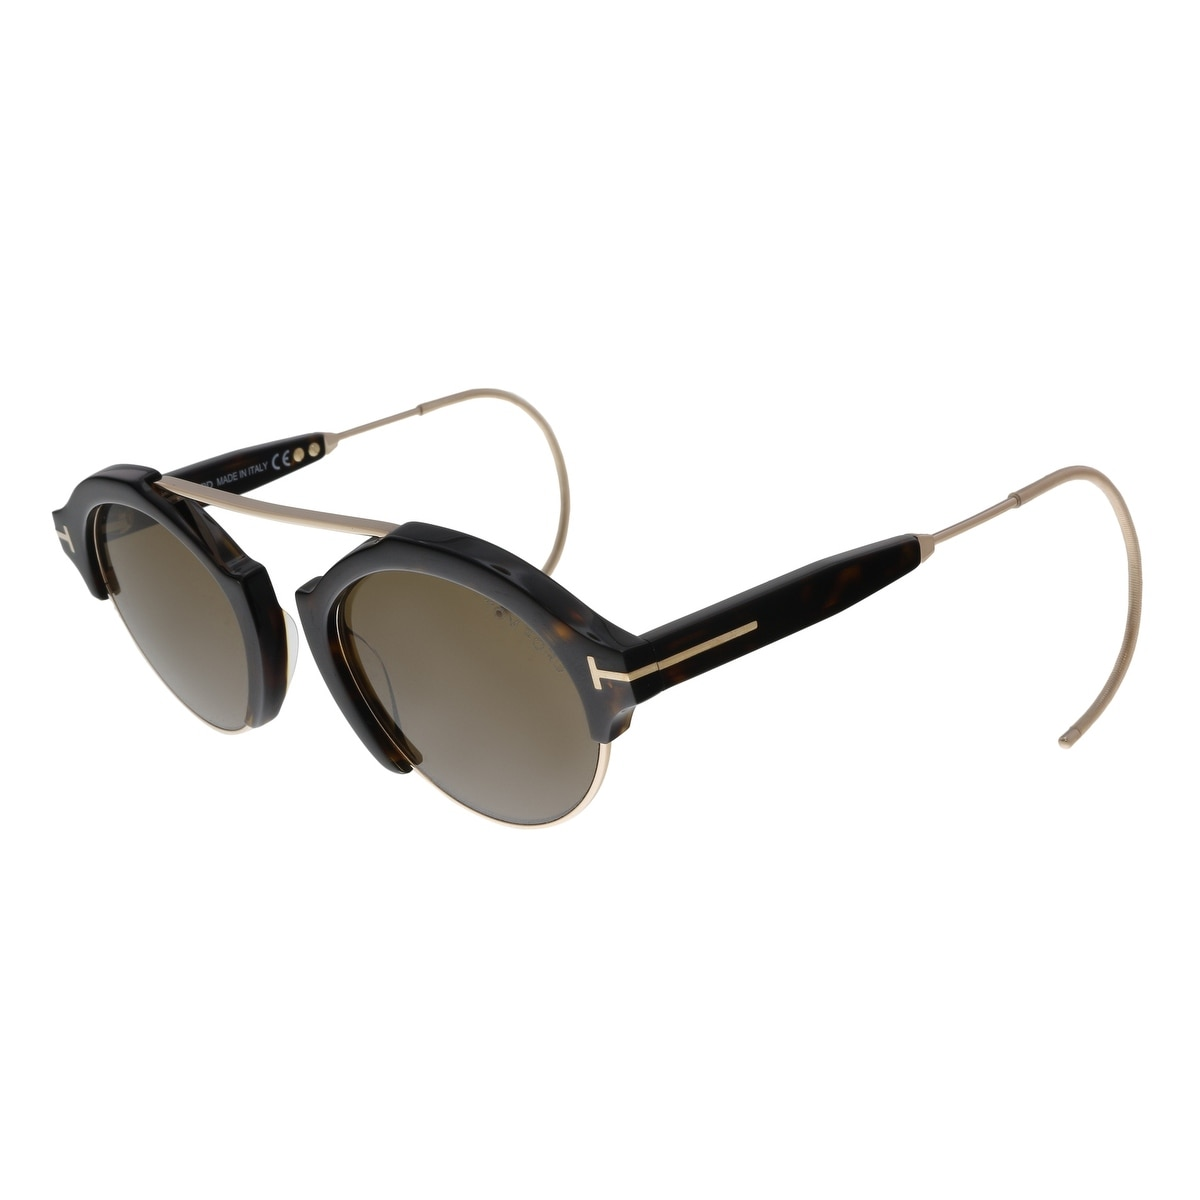 3d580eaeda5 Tom Ford Men s Sunglasses